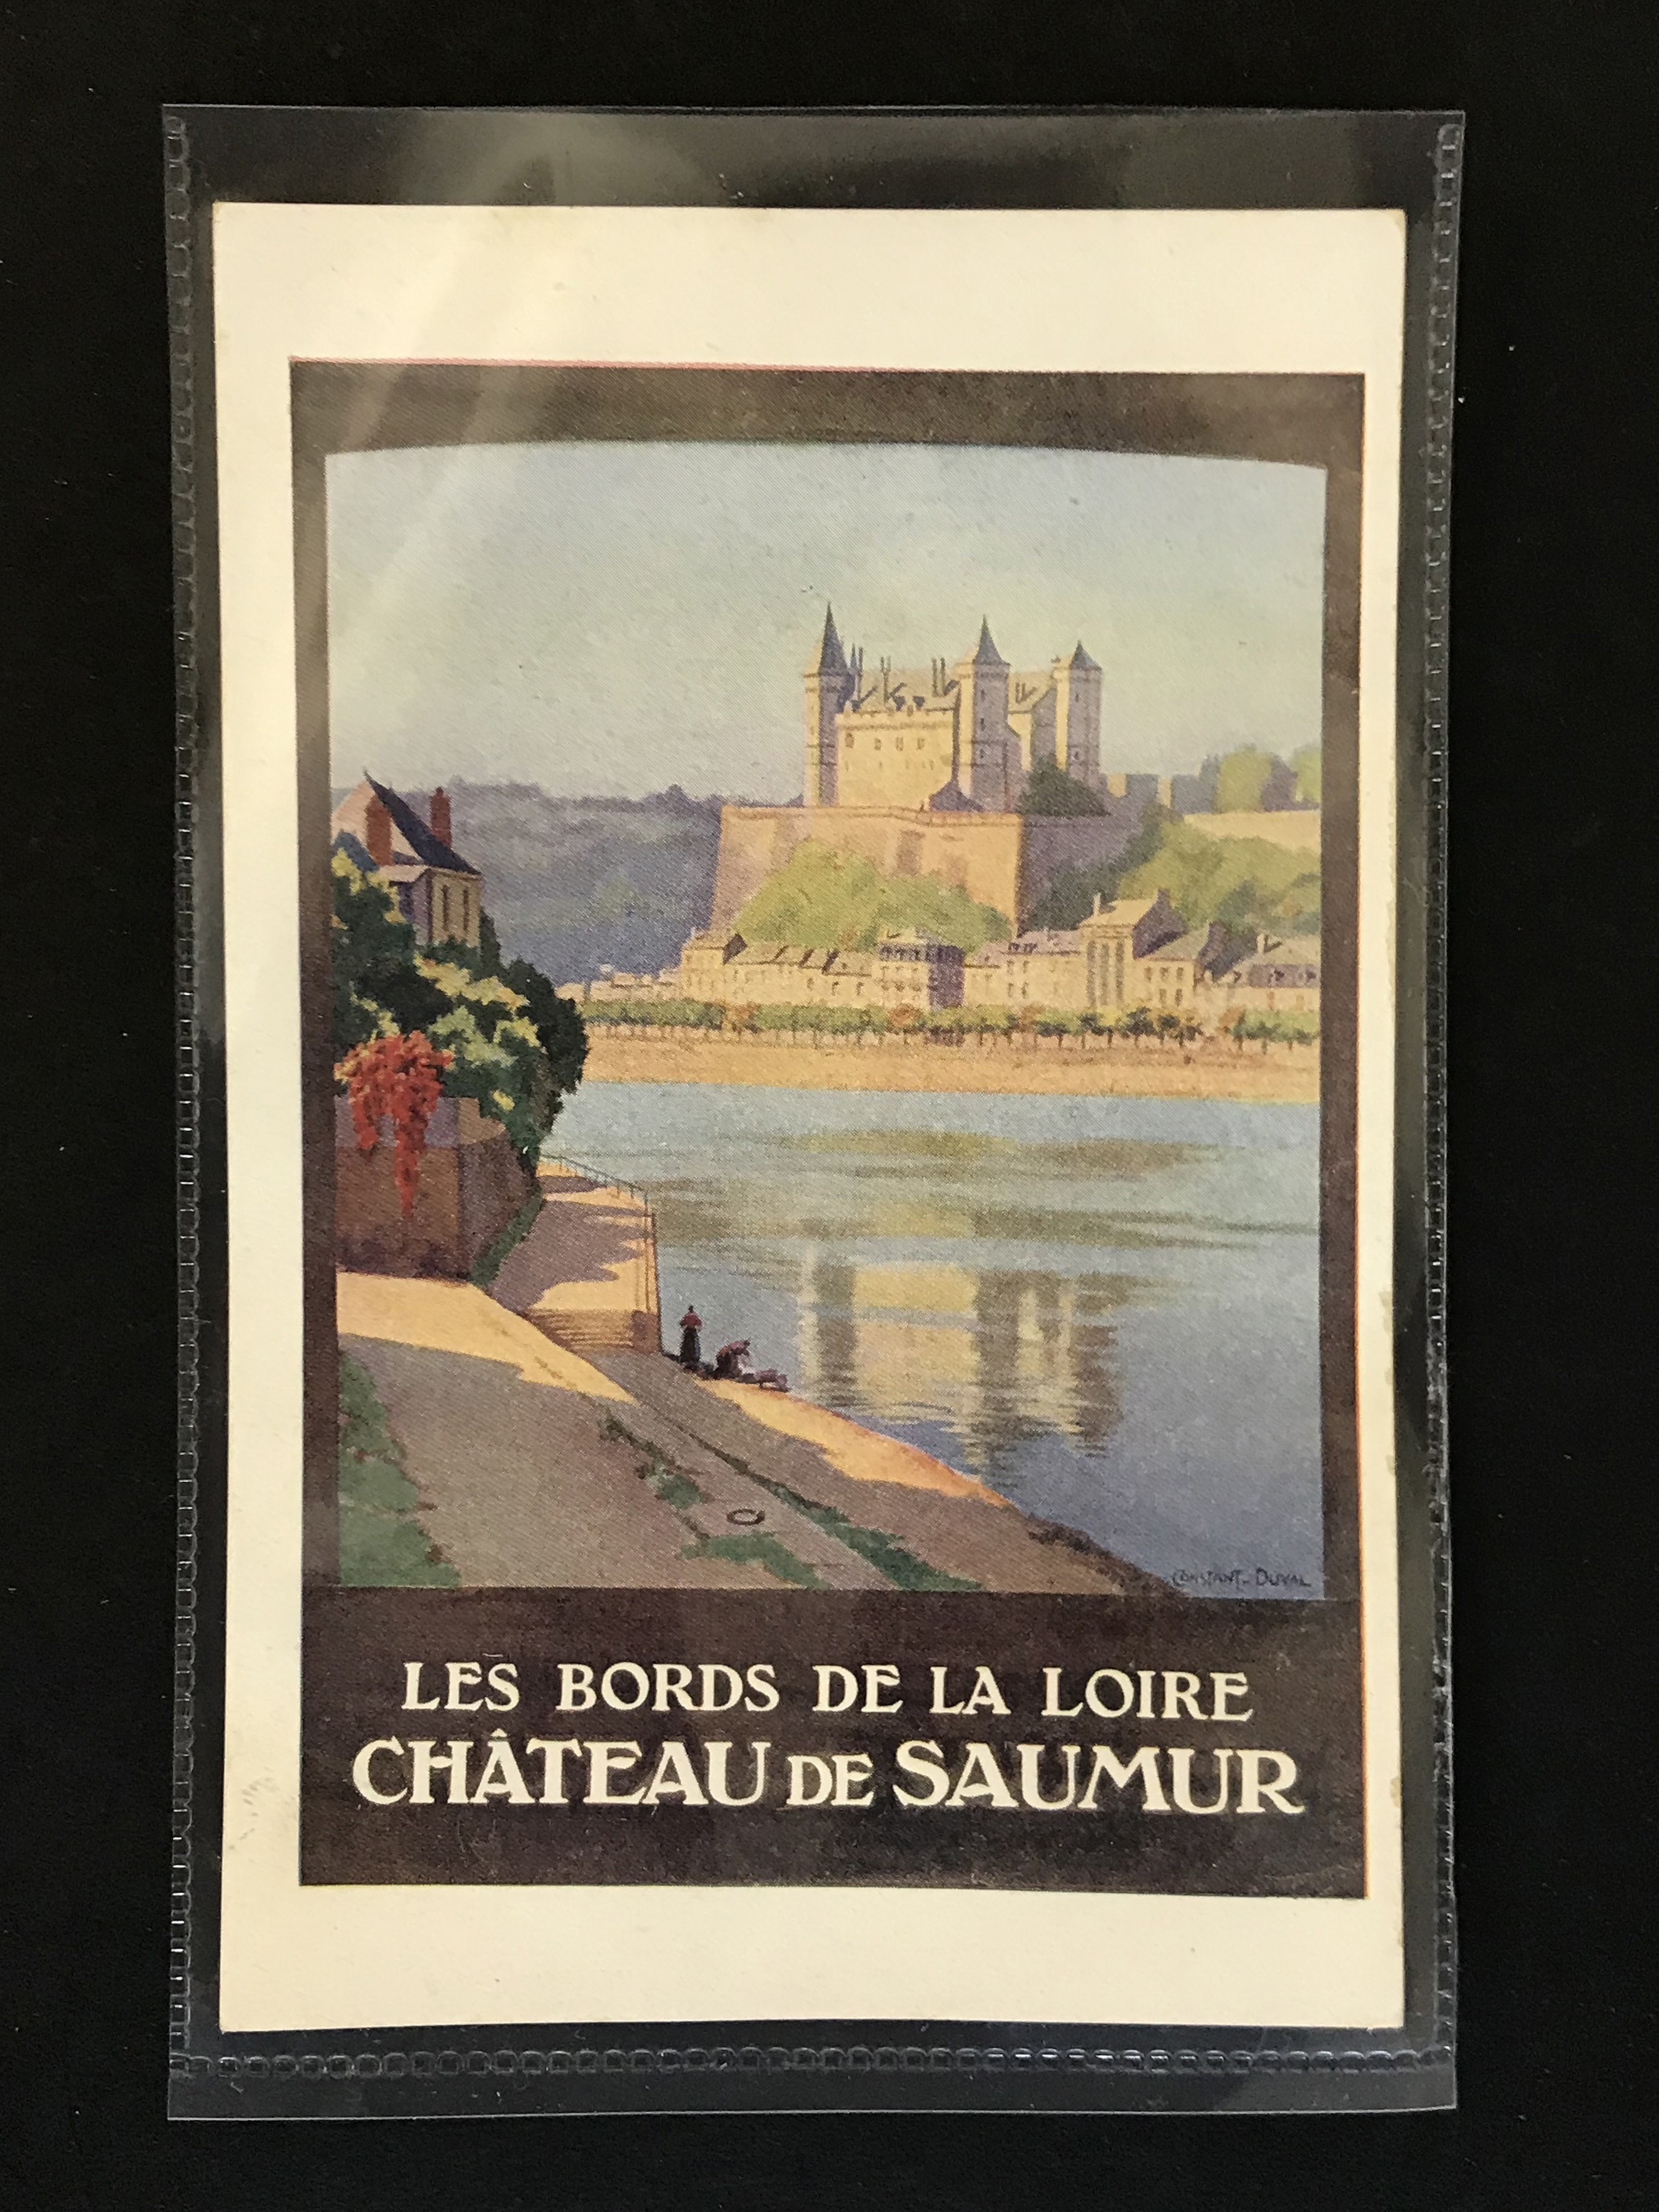 SIX FRENCH OLD POSTCARDS PROMOTING TOURIST DESTINATIONS - Image 4 of 8